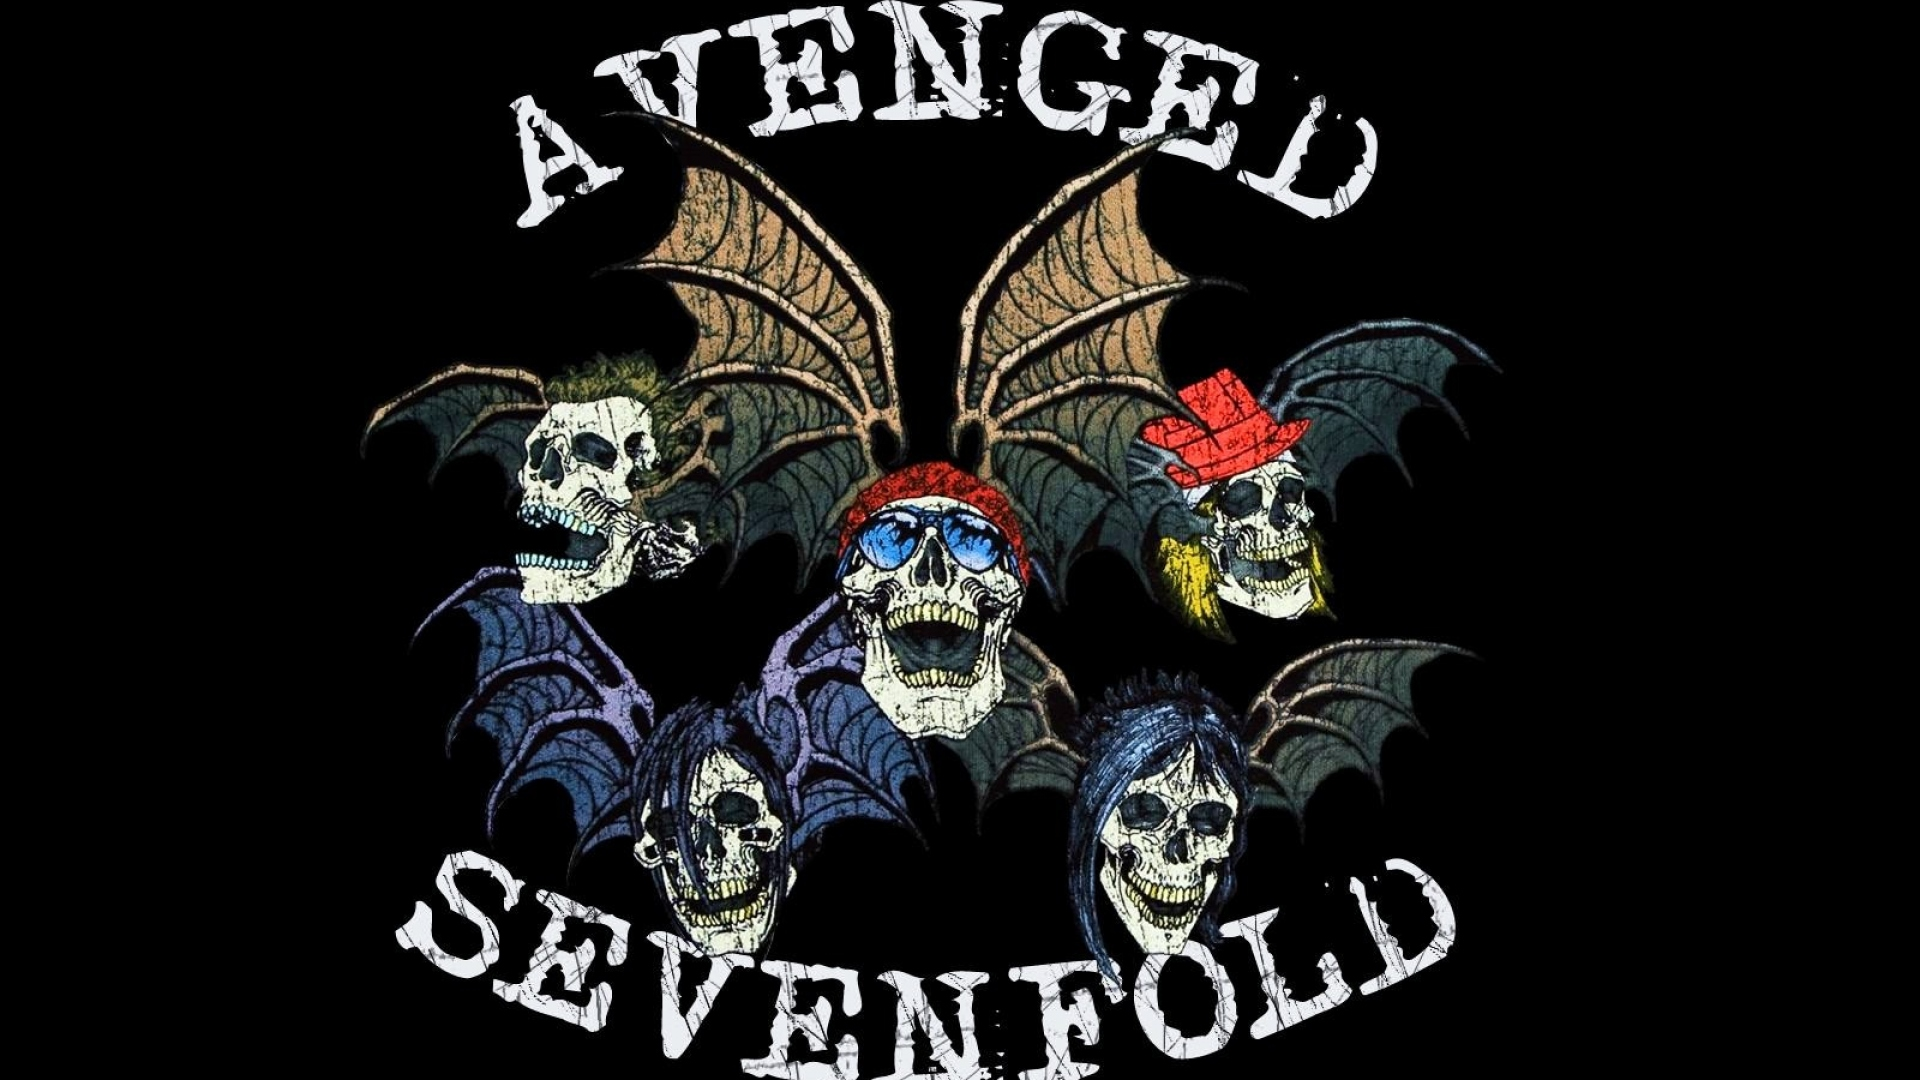 Avenged Sevenfold wallpaper   414520 1920x1080